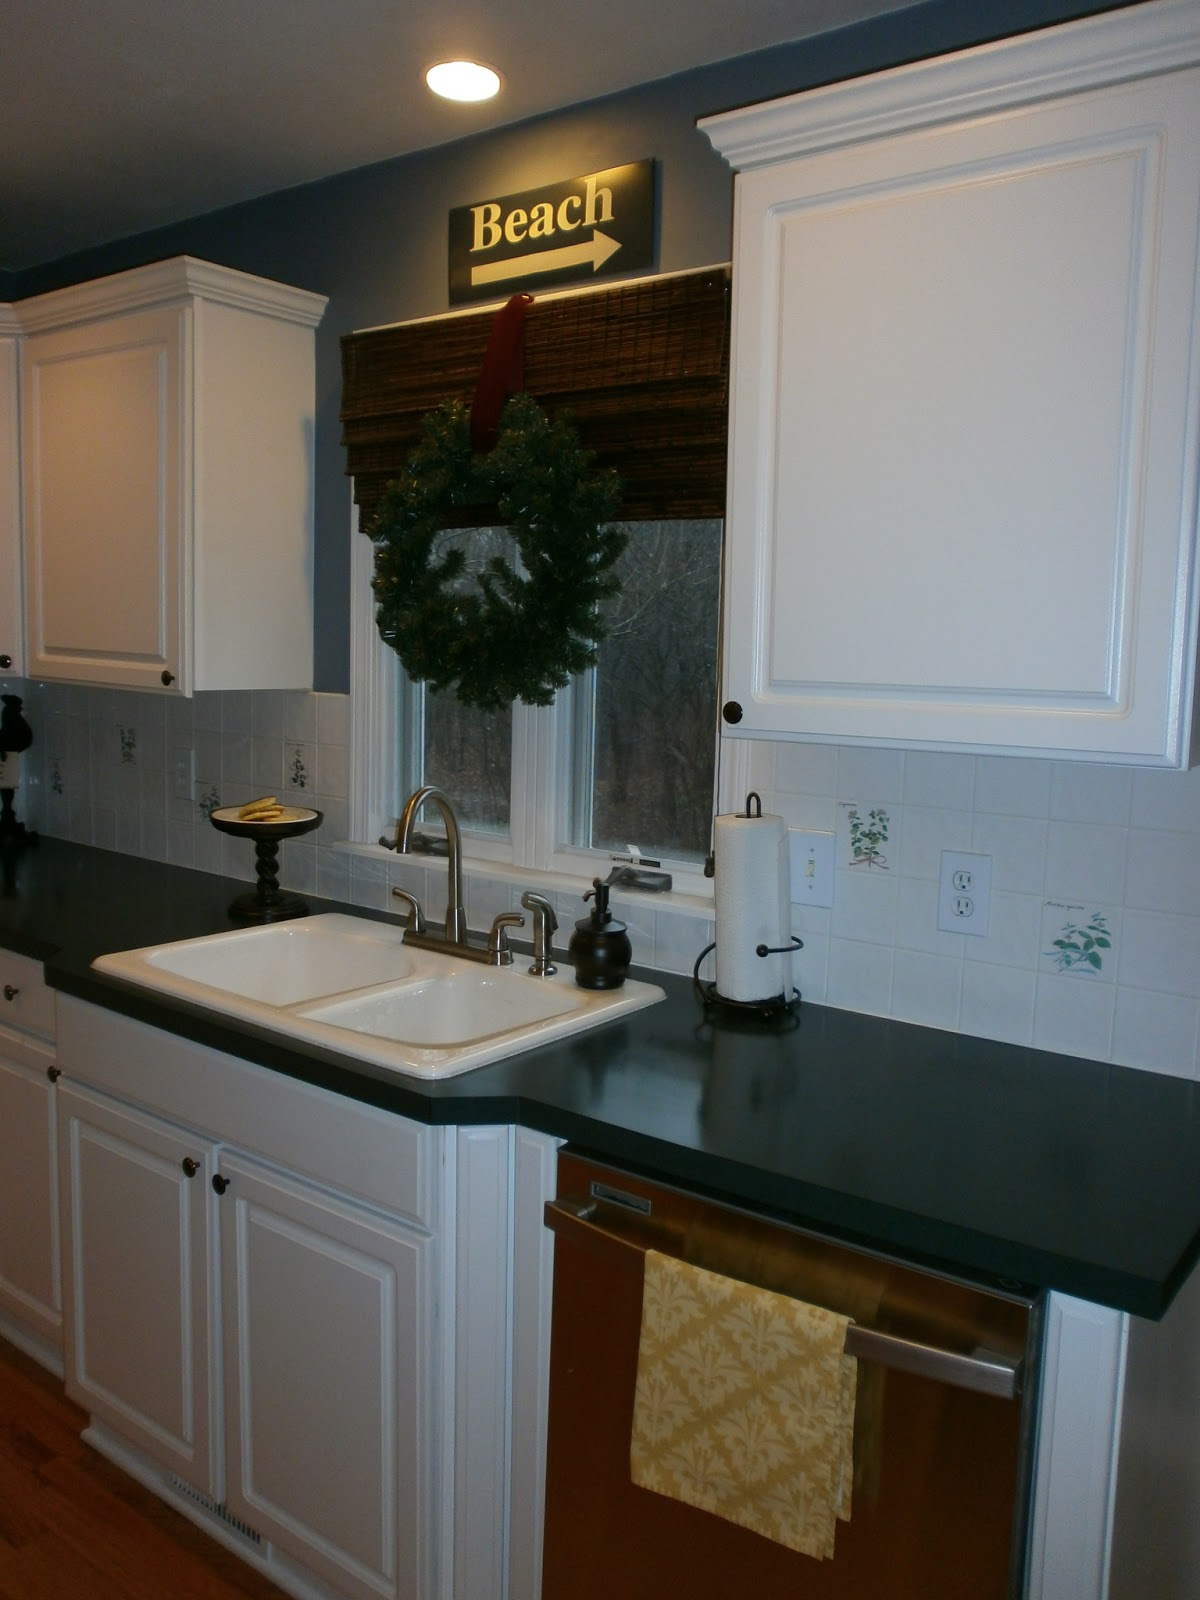 Backsplash Paint Ideas diy: painting a ceramic tile backsplash